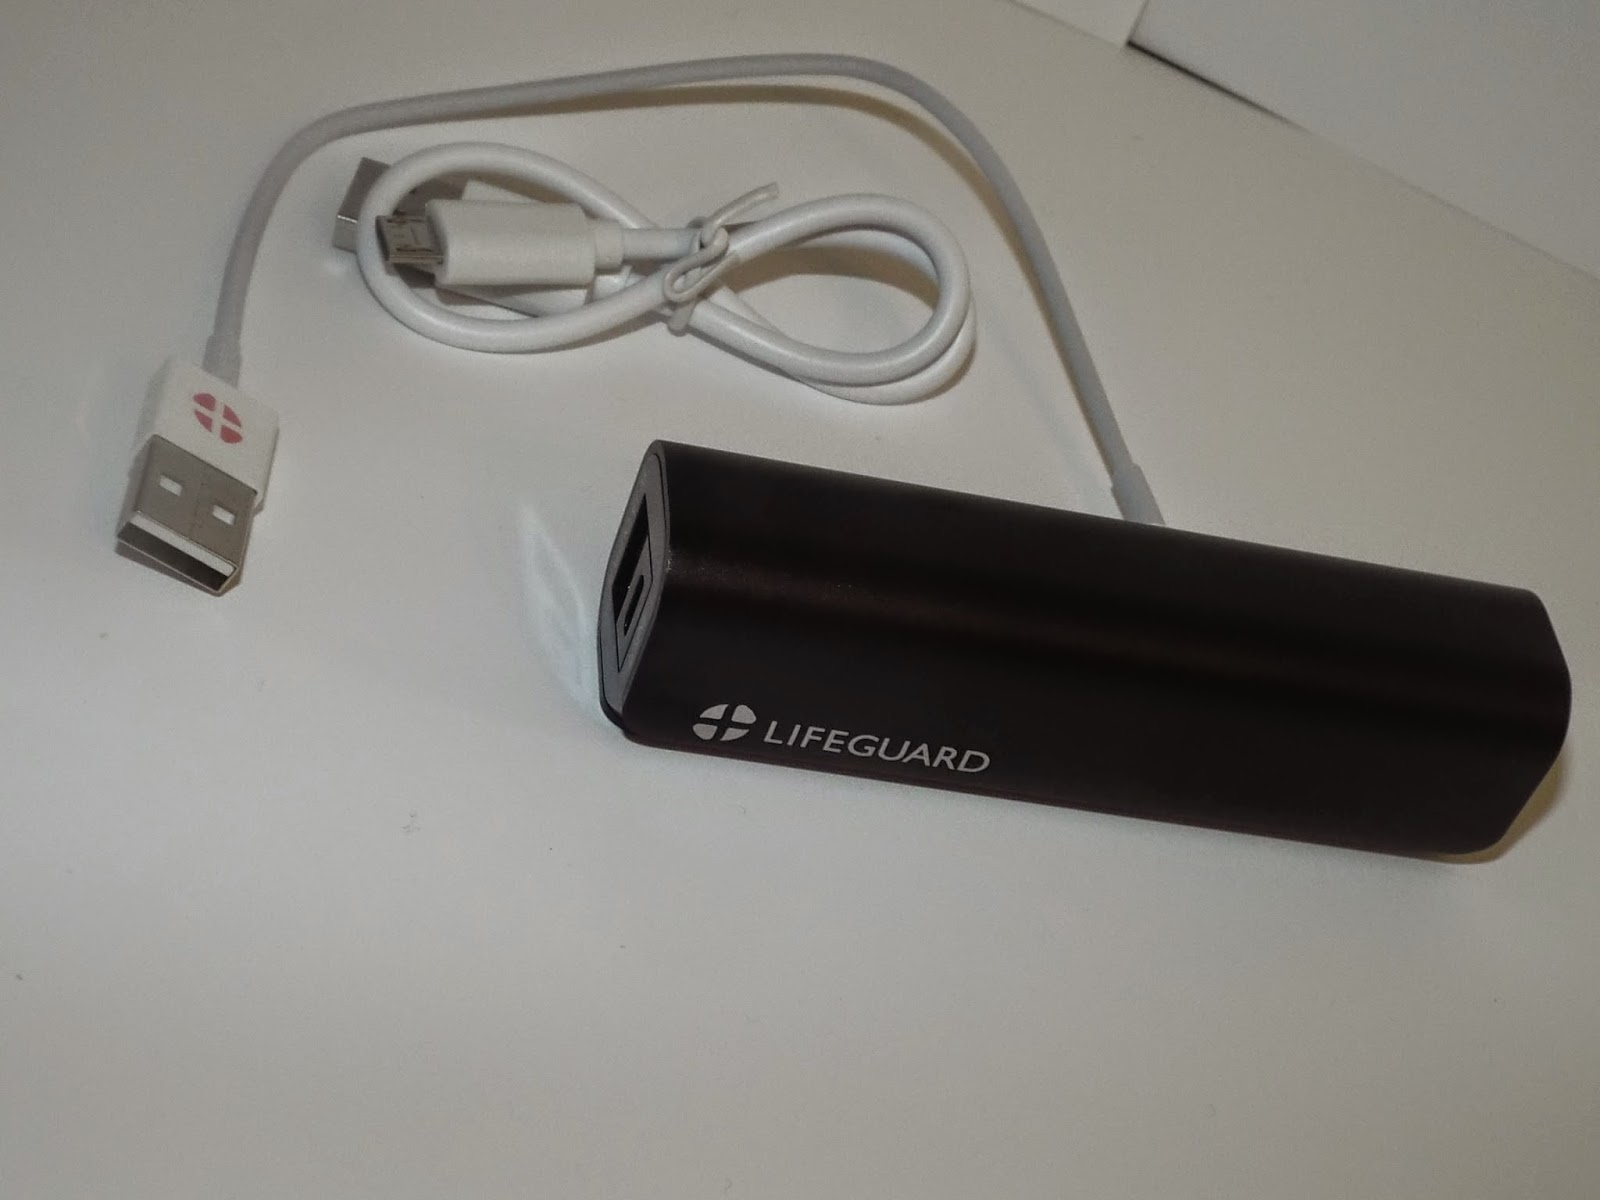 LifeGuard Charger, Two cords